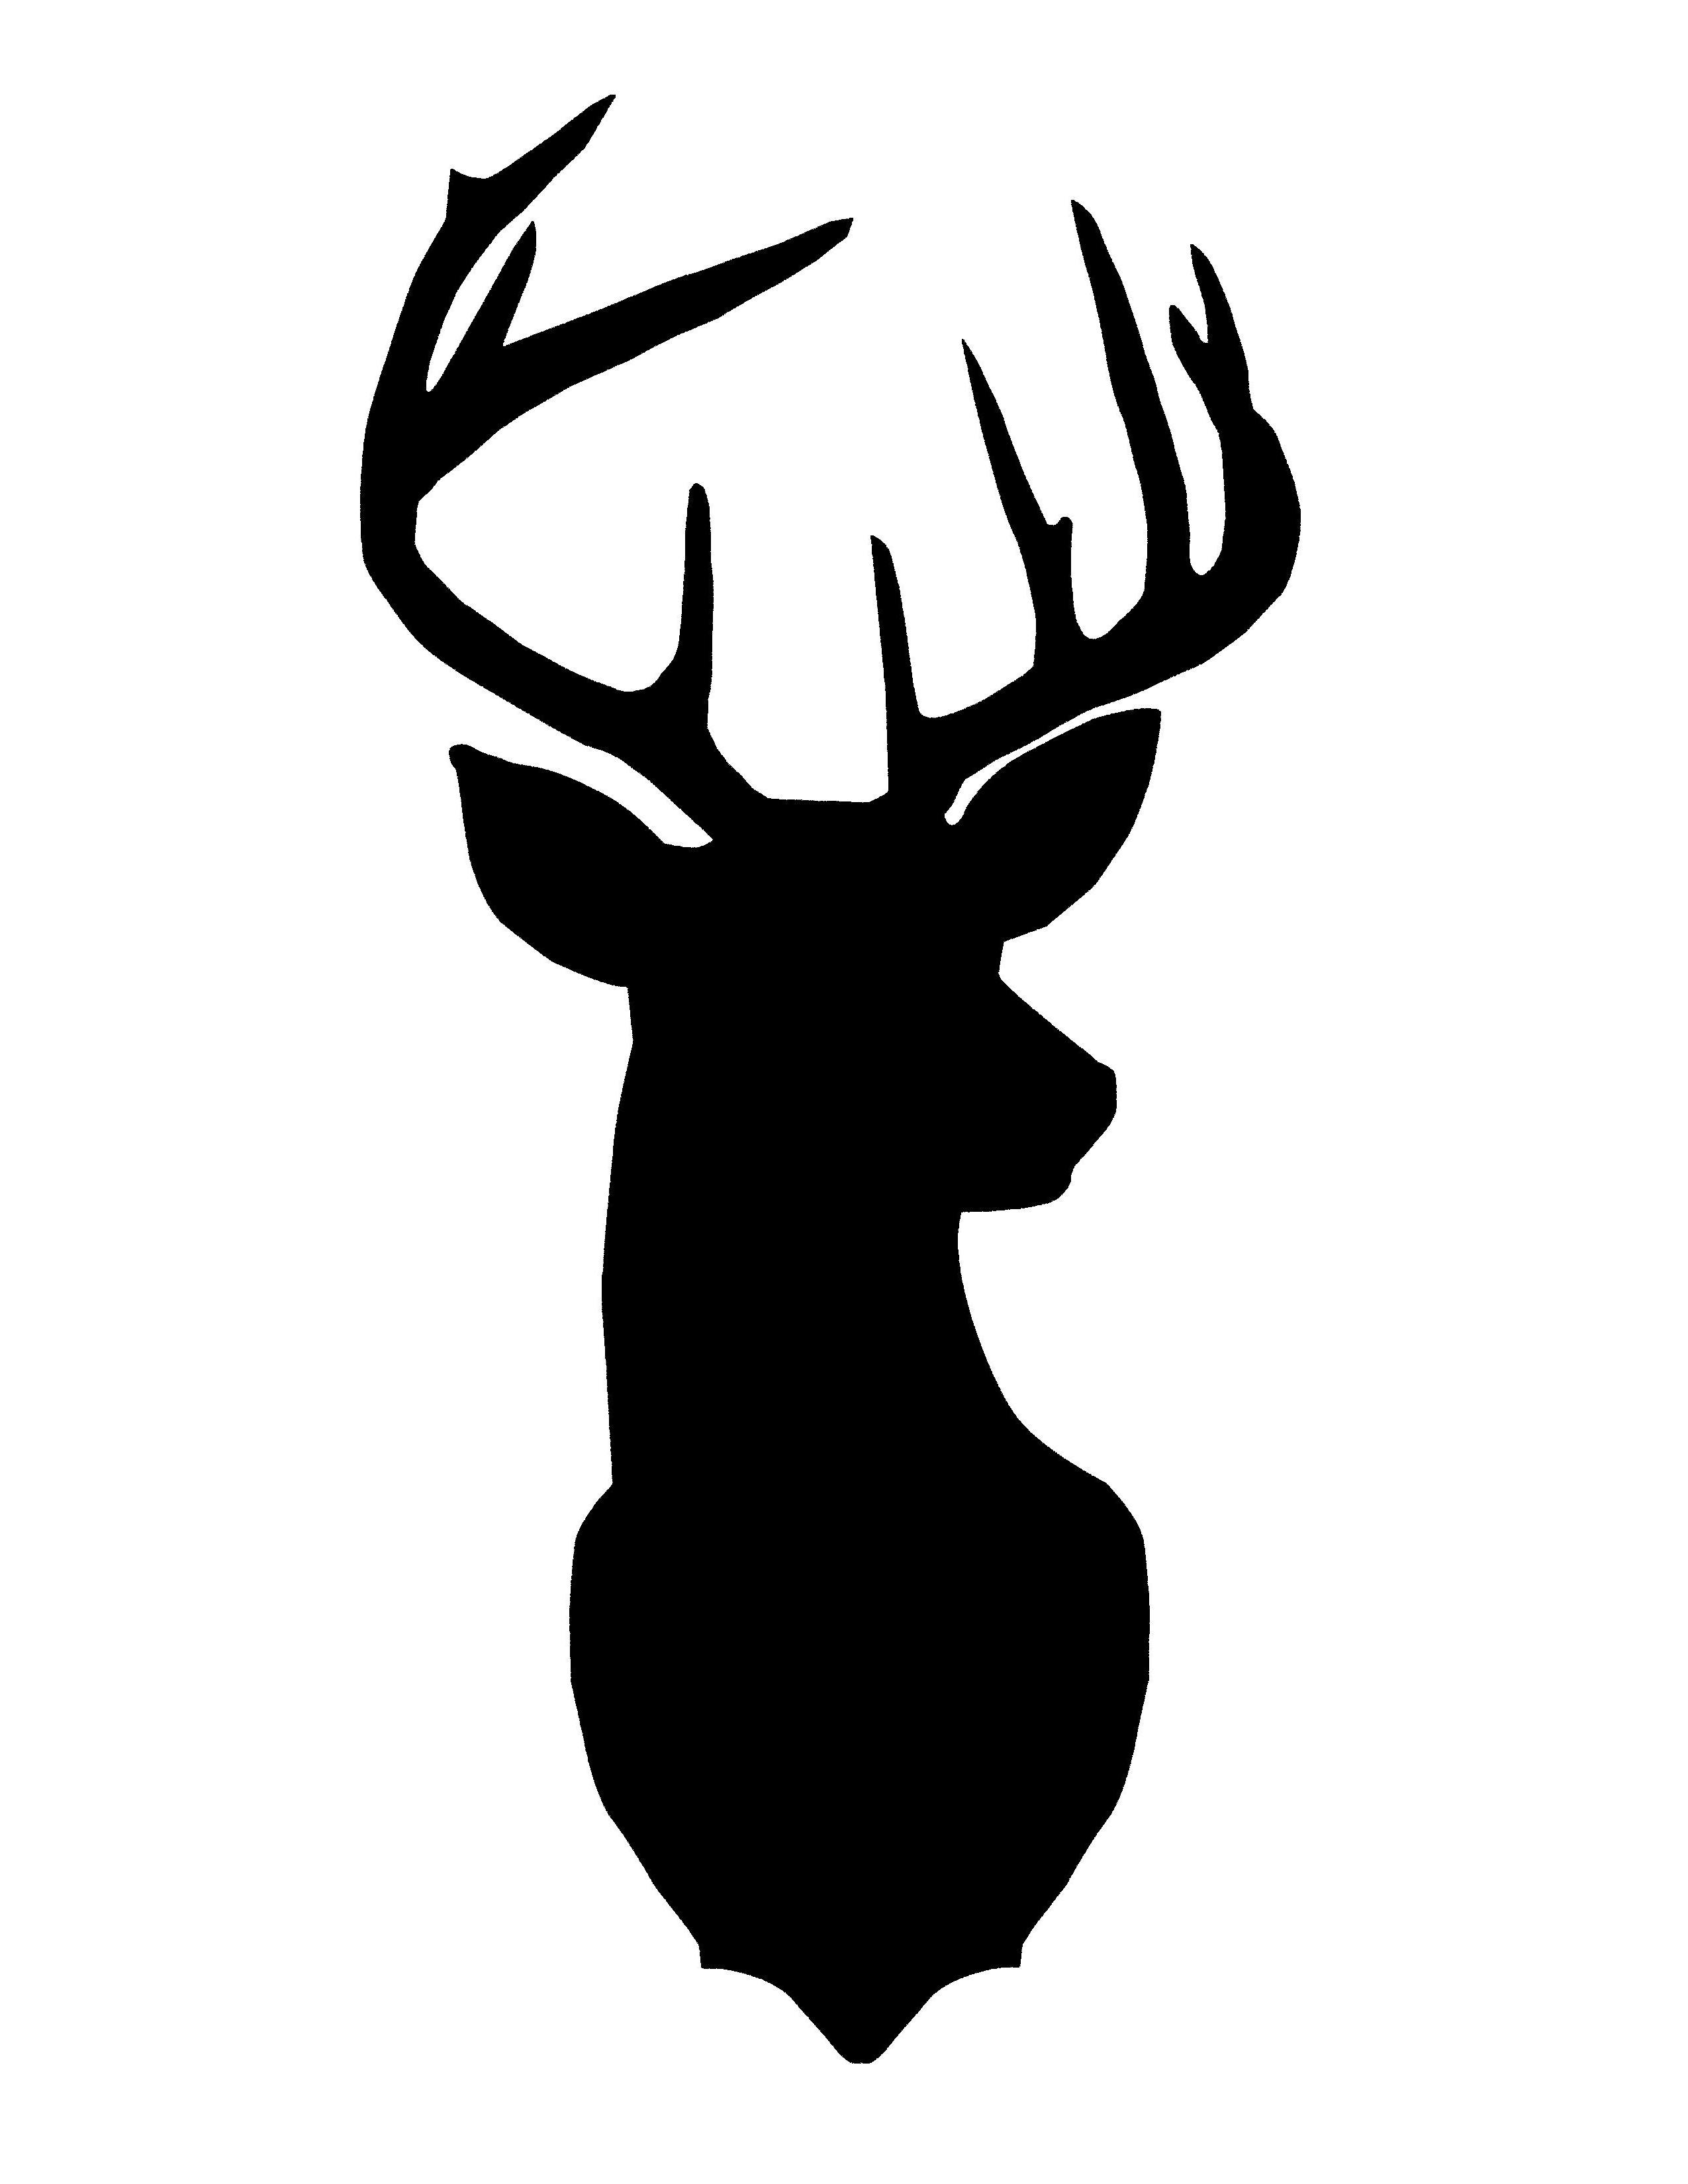 Whitetail Deer Vector at GetDrawings.com.